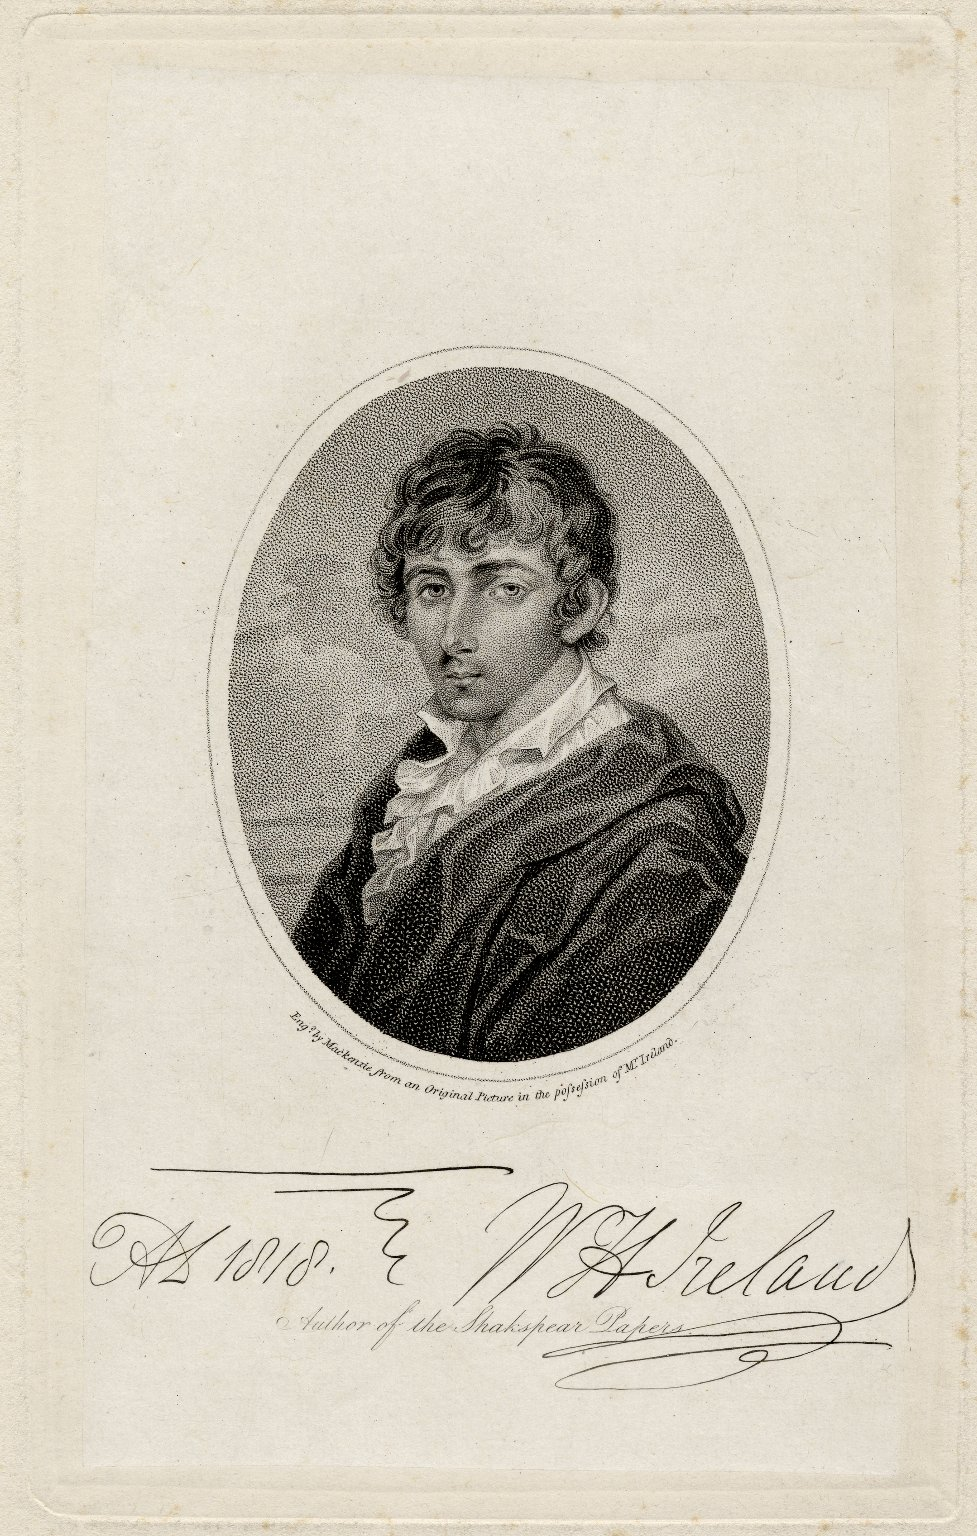 A. D. 1818. W. H. Ireland, author of the Shakspear [sic] papers [graphic] / engd. by Mackenzie from an original picture in the possession of Mr. Ireland.